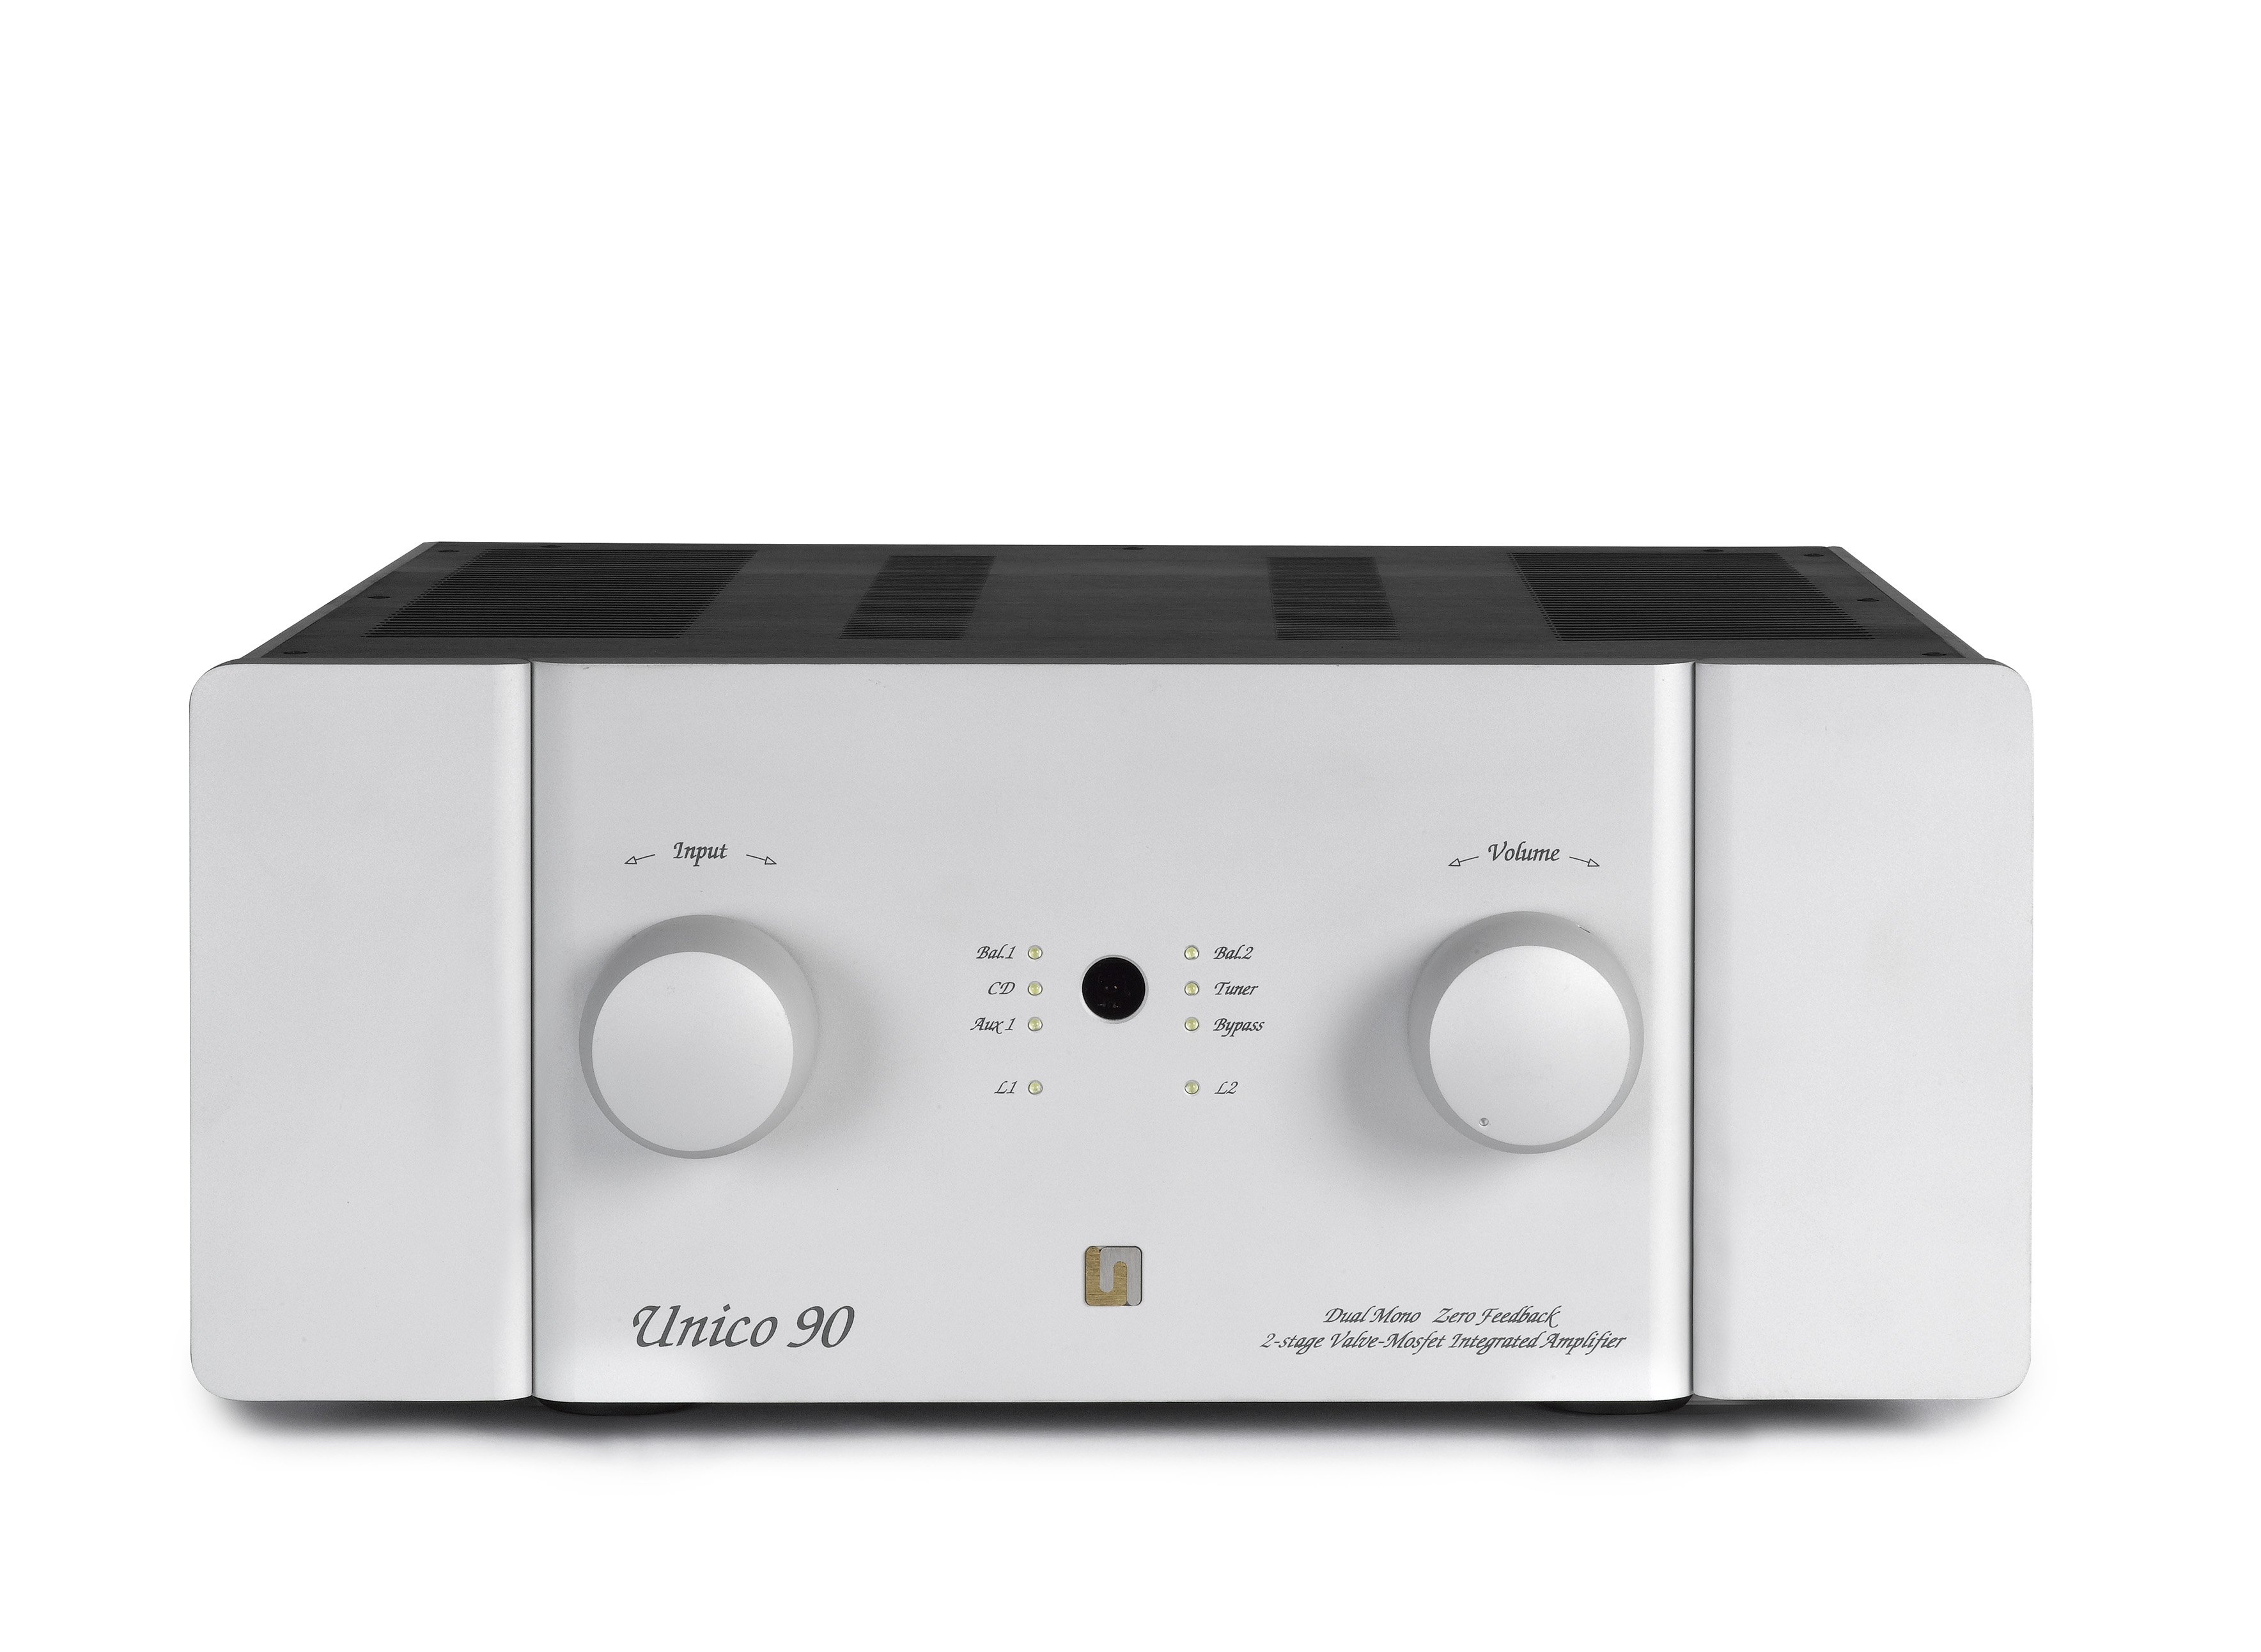 Unison Research Unico 90 100w Hifi Mosfet Amp Hi Fi World Review